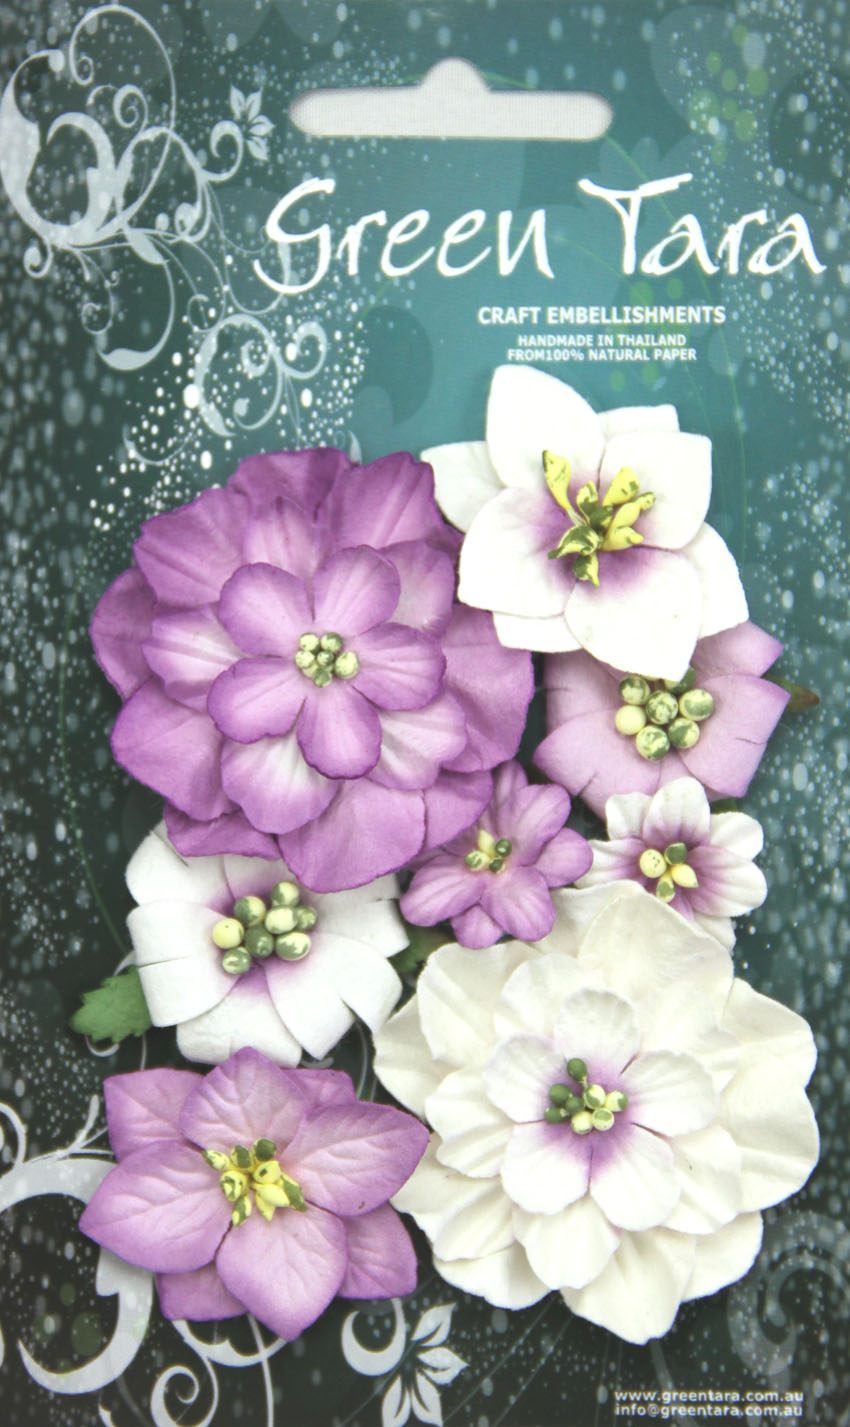 Fantasy Blooms - Pack of 8 Co-ordinated Flowers, LAVENDER